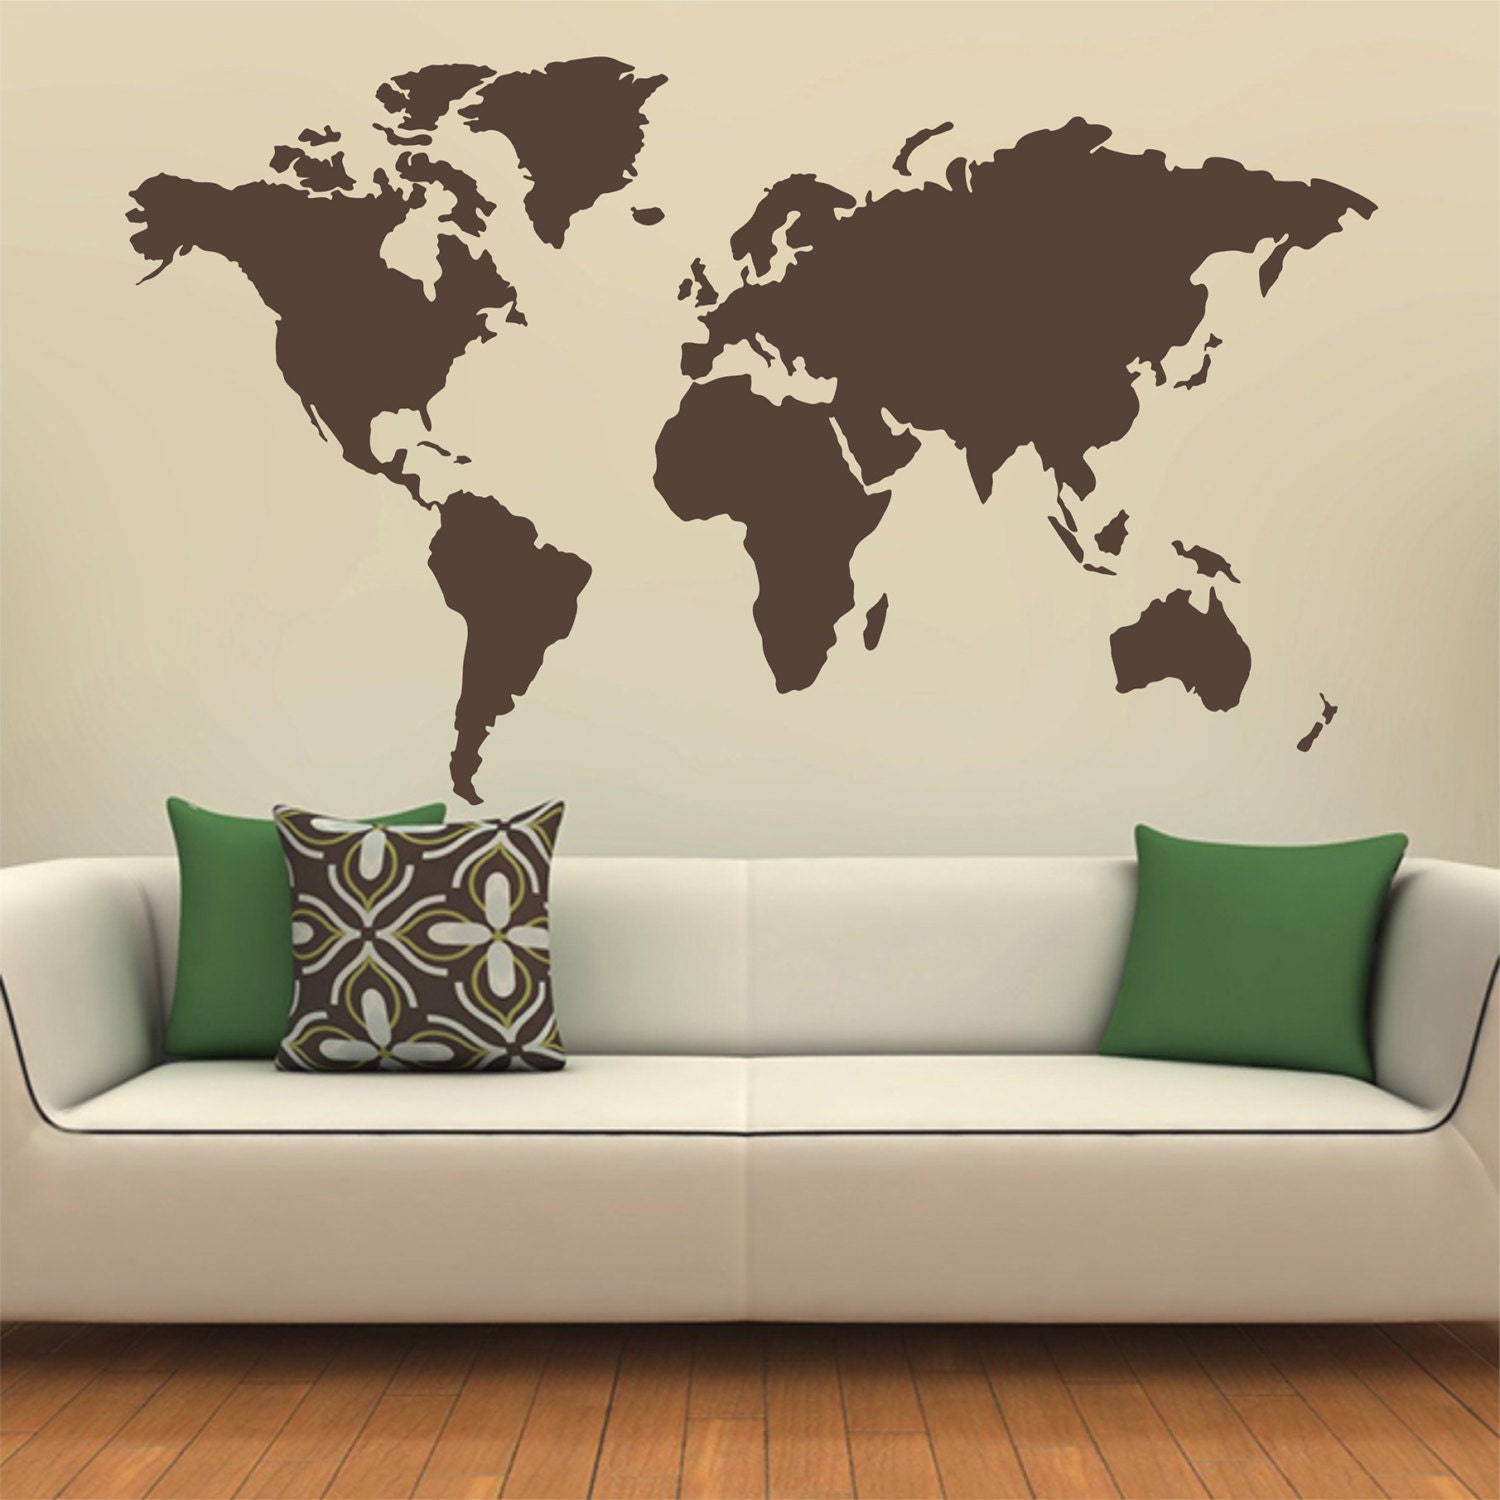 Map of the world silhouette wall decal Globe wall decal Wall